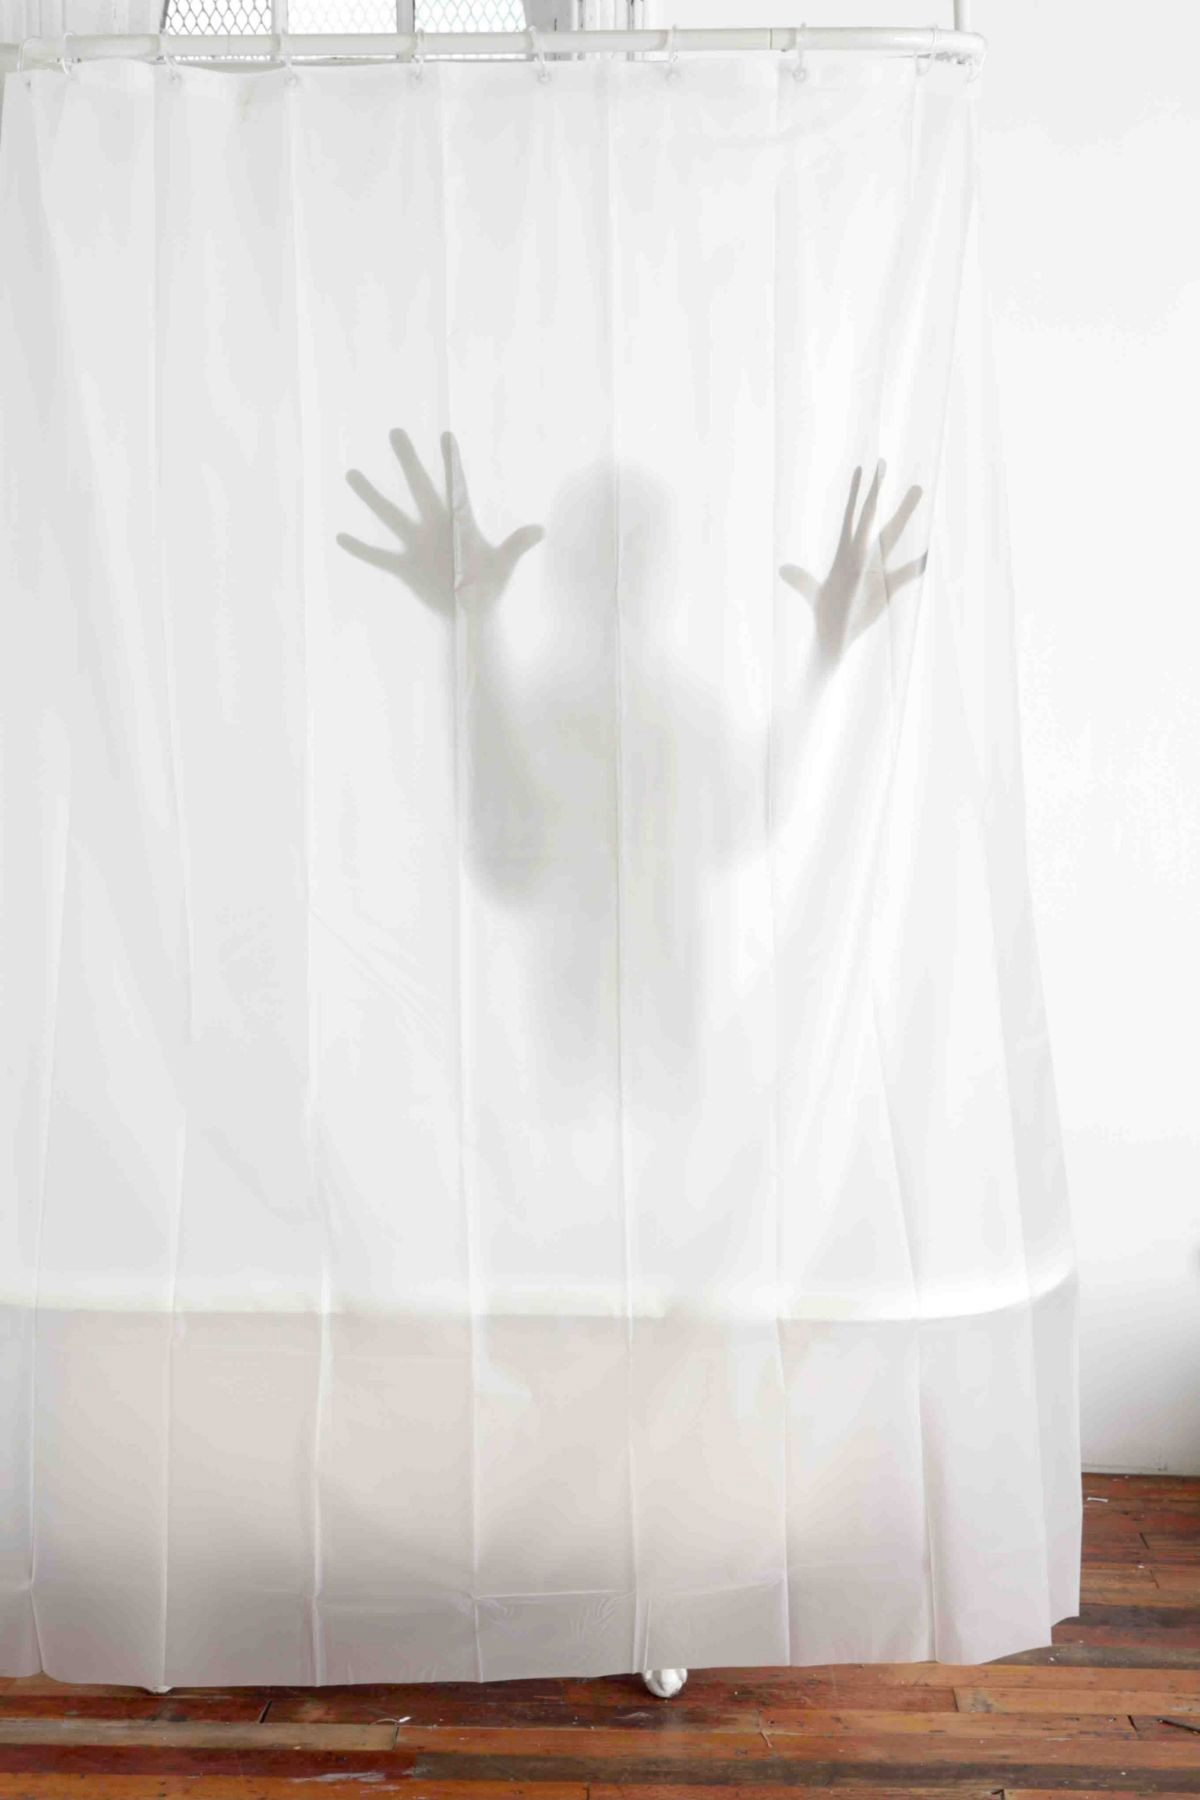 Scary shower curtain - Scary Shower Curtain The Green Head